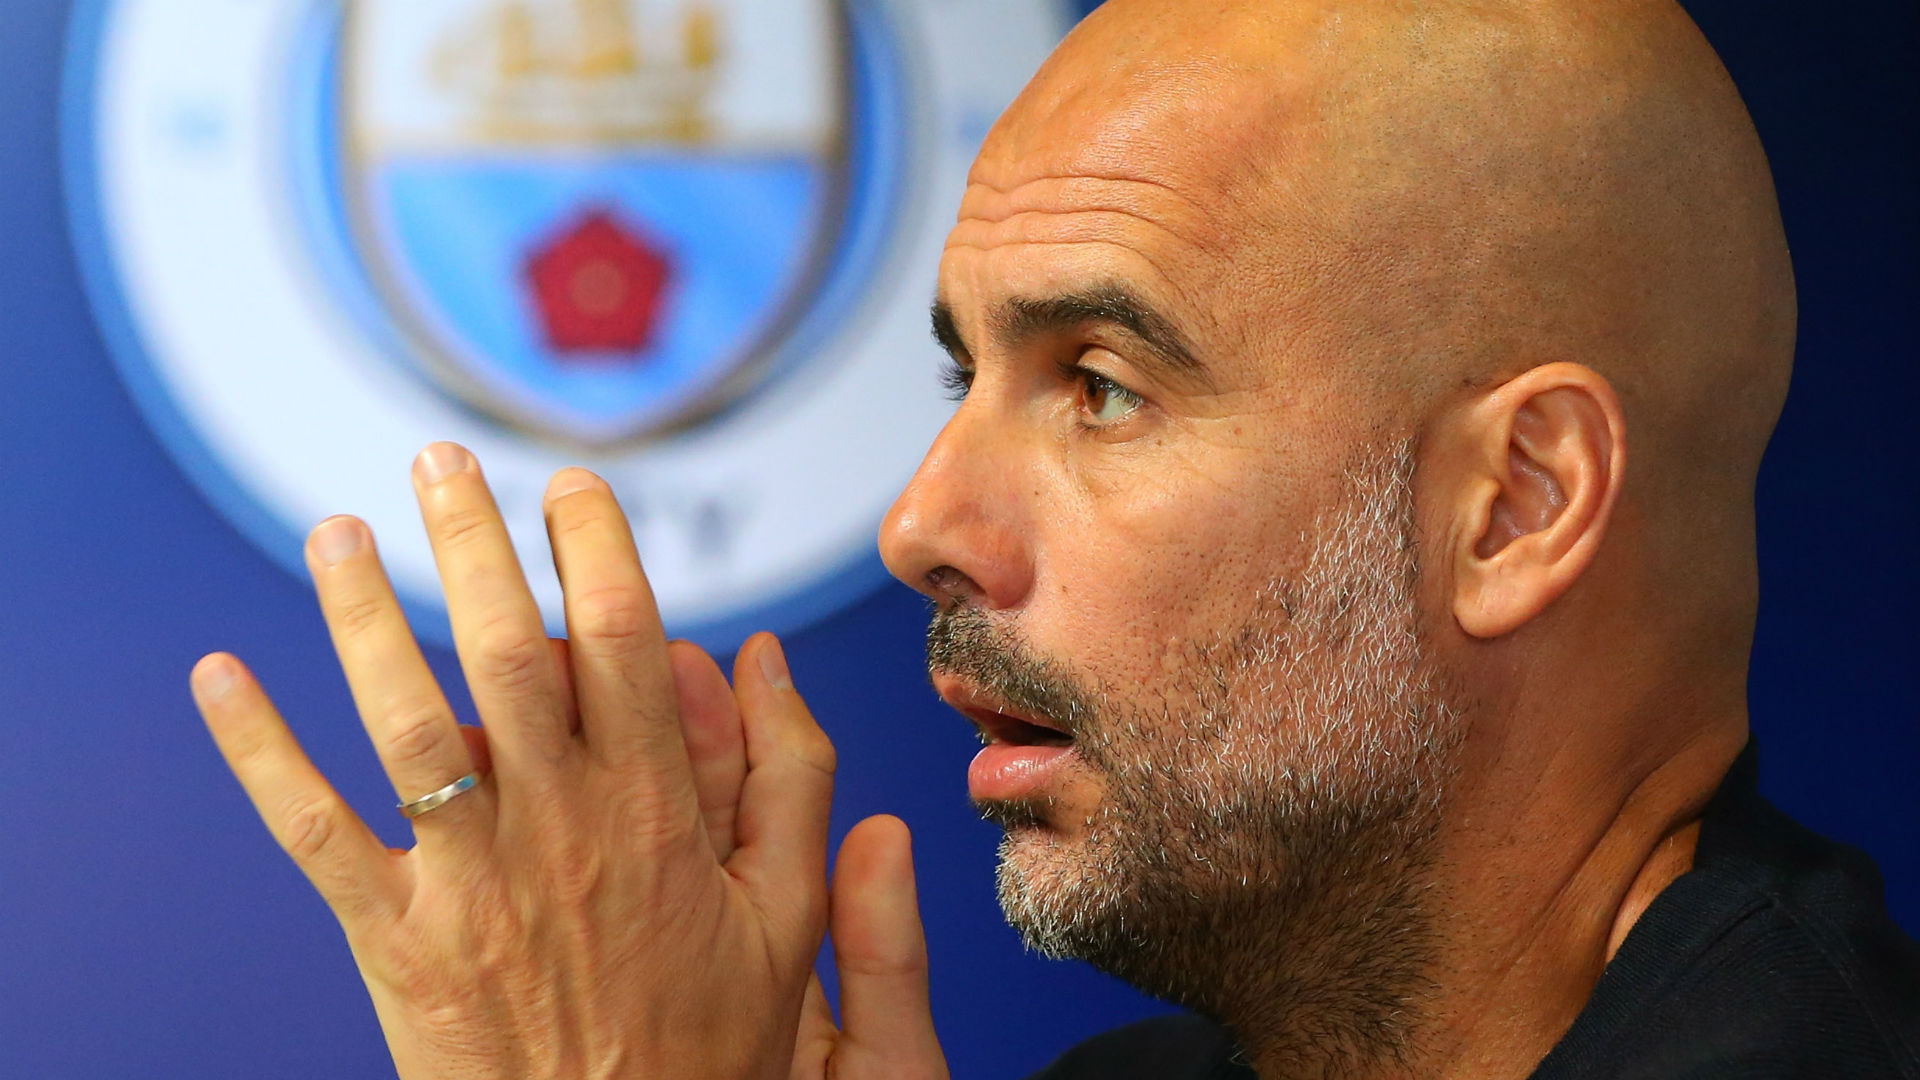 Manchester City defended by Pep Guardiola amid Football Leaks accusations